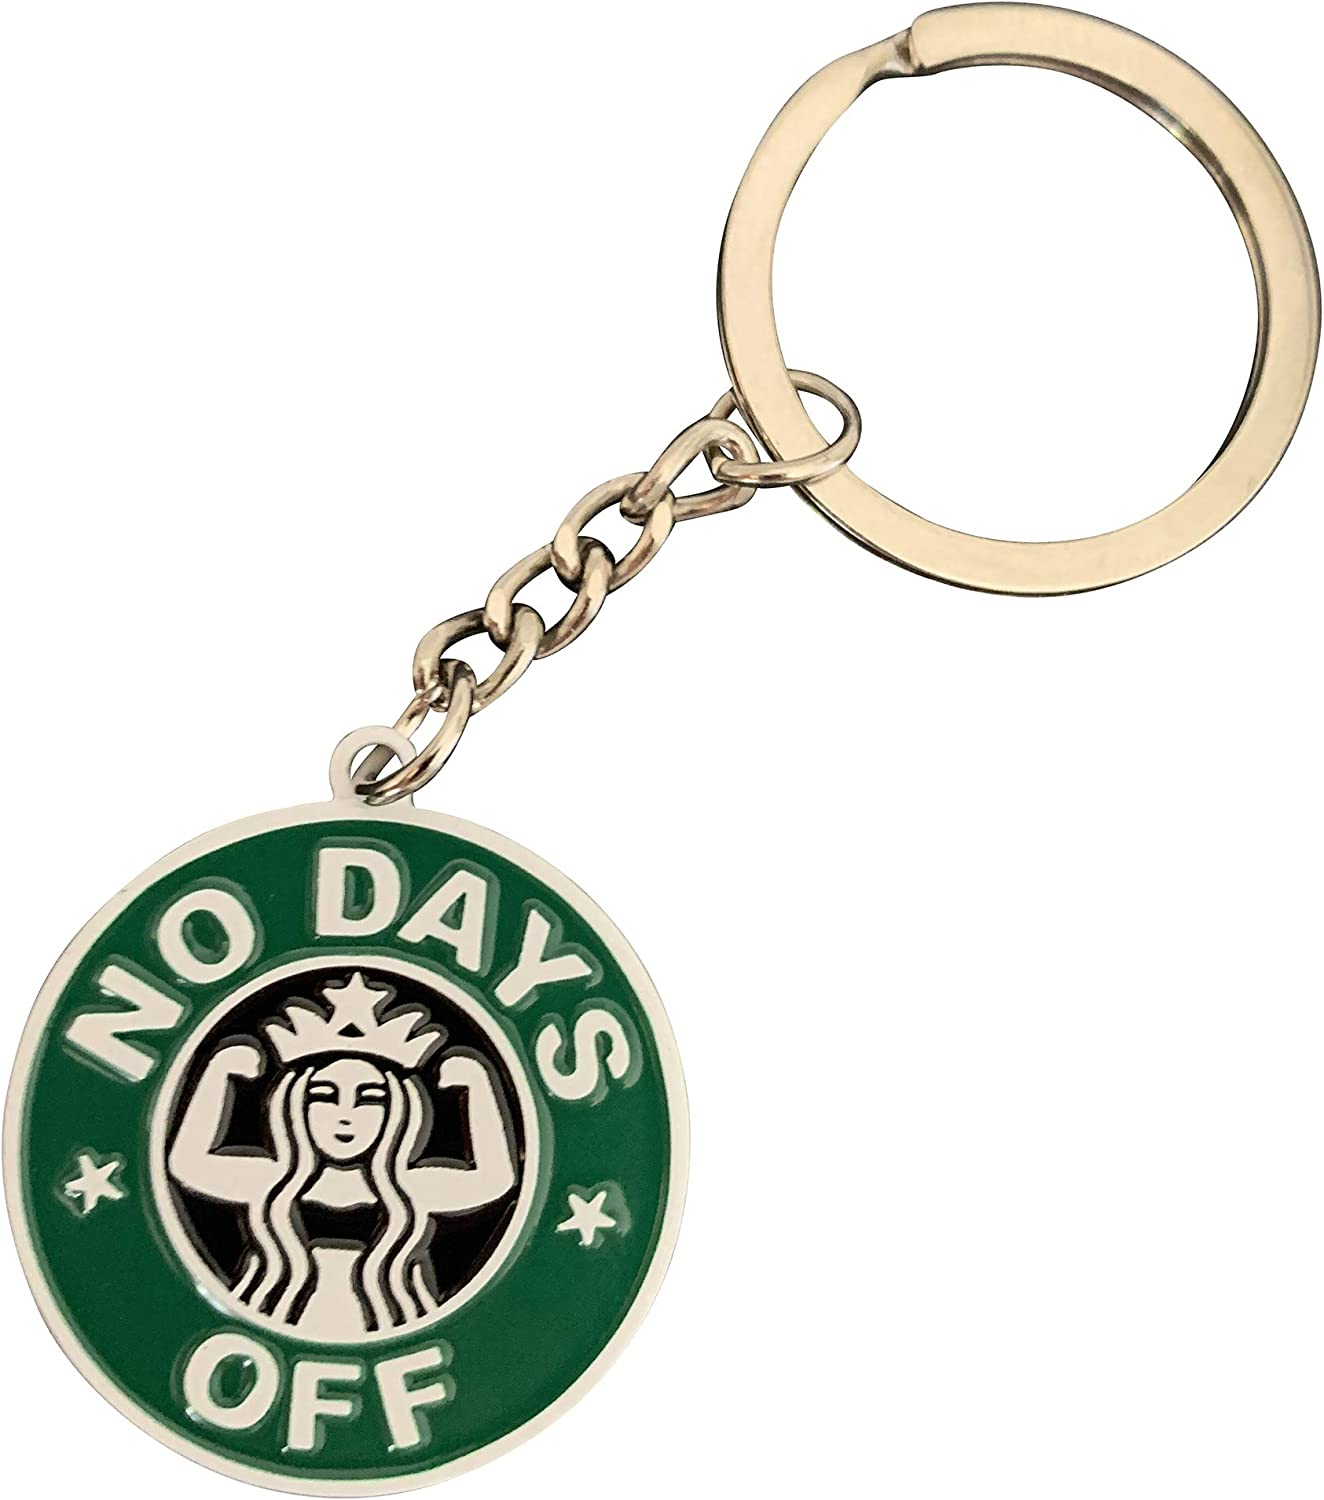 Prime Creations Starbuff Cute Keychain for Coffee Lovers | Fun Keychains for Women, Girls & Men